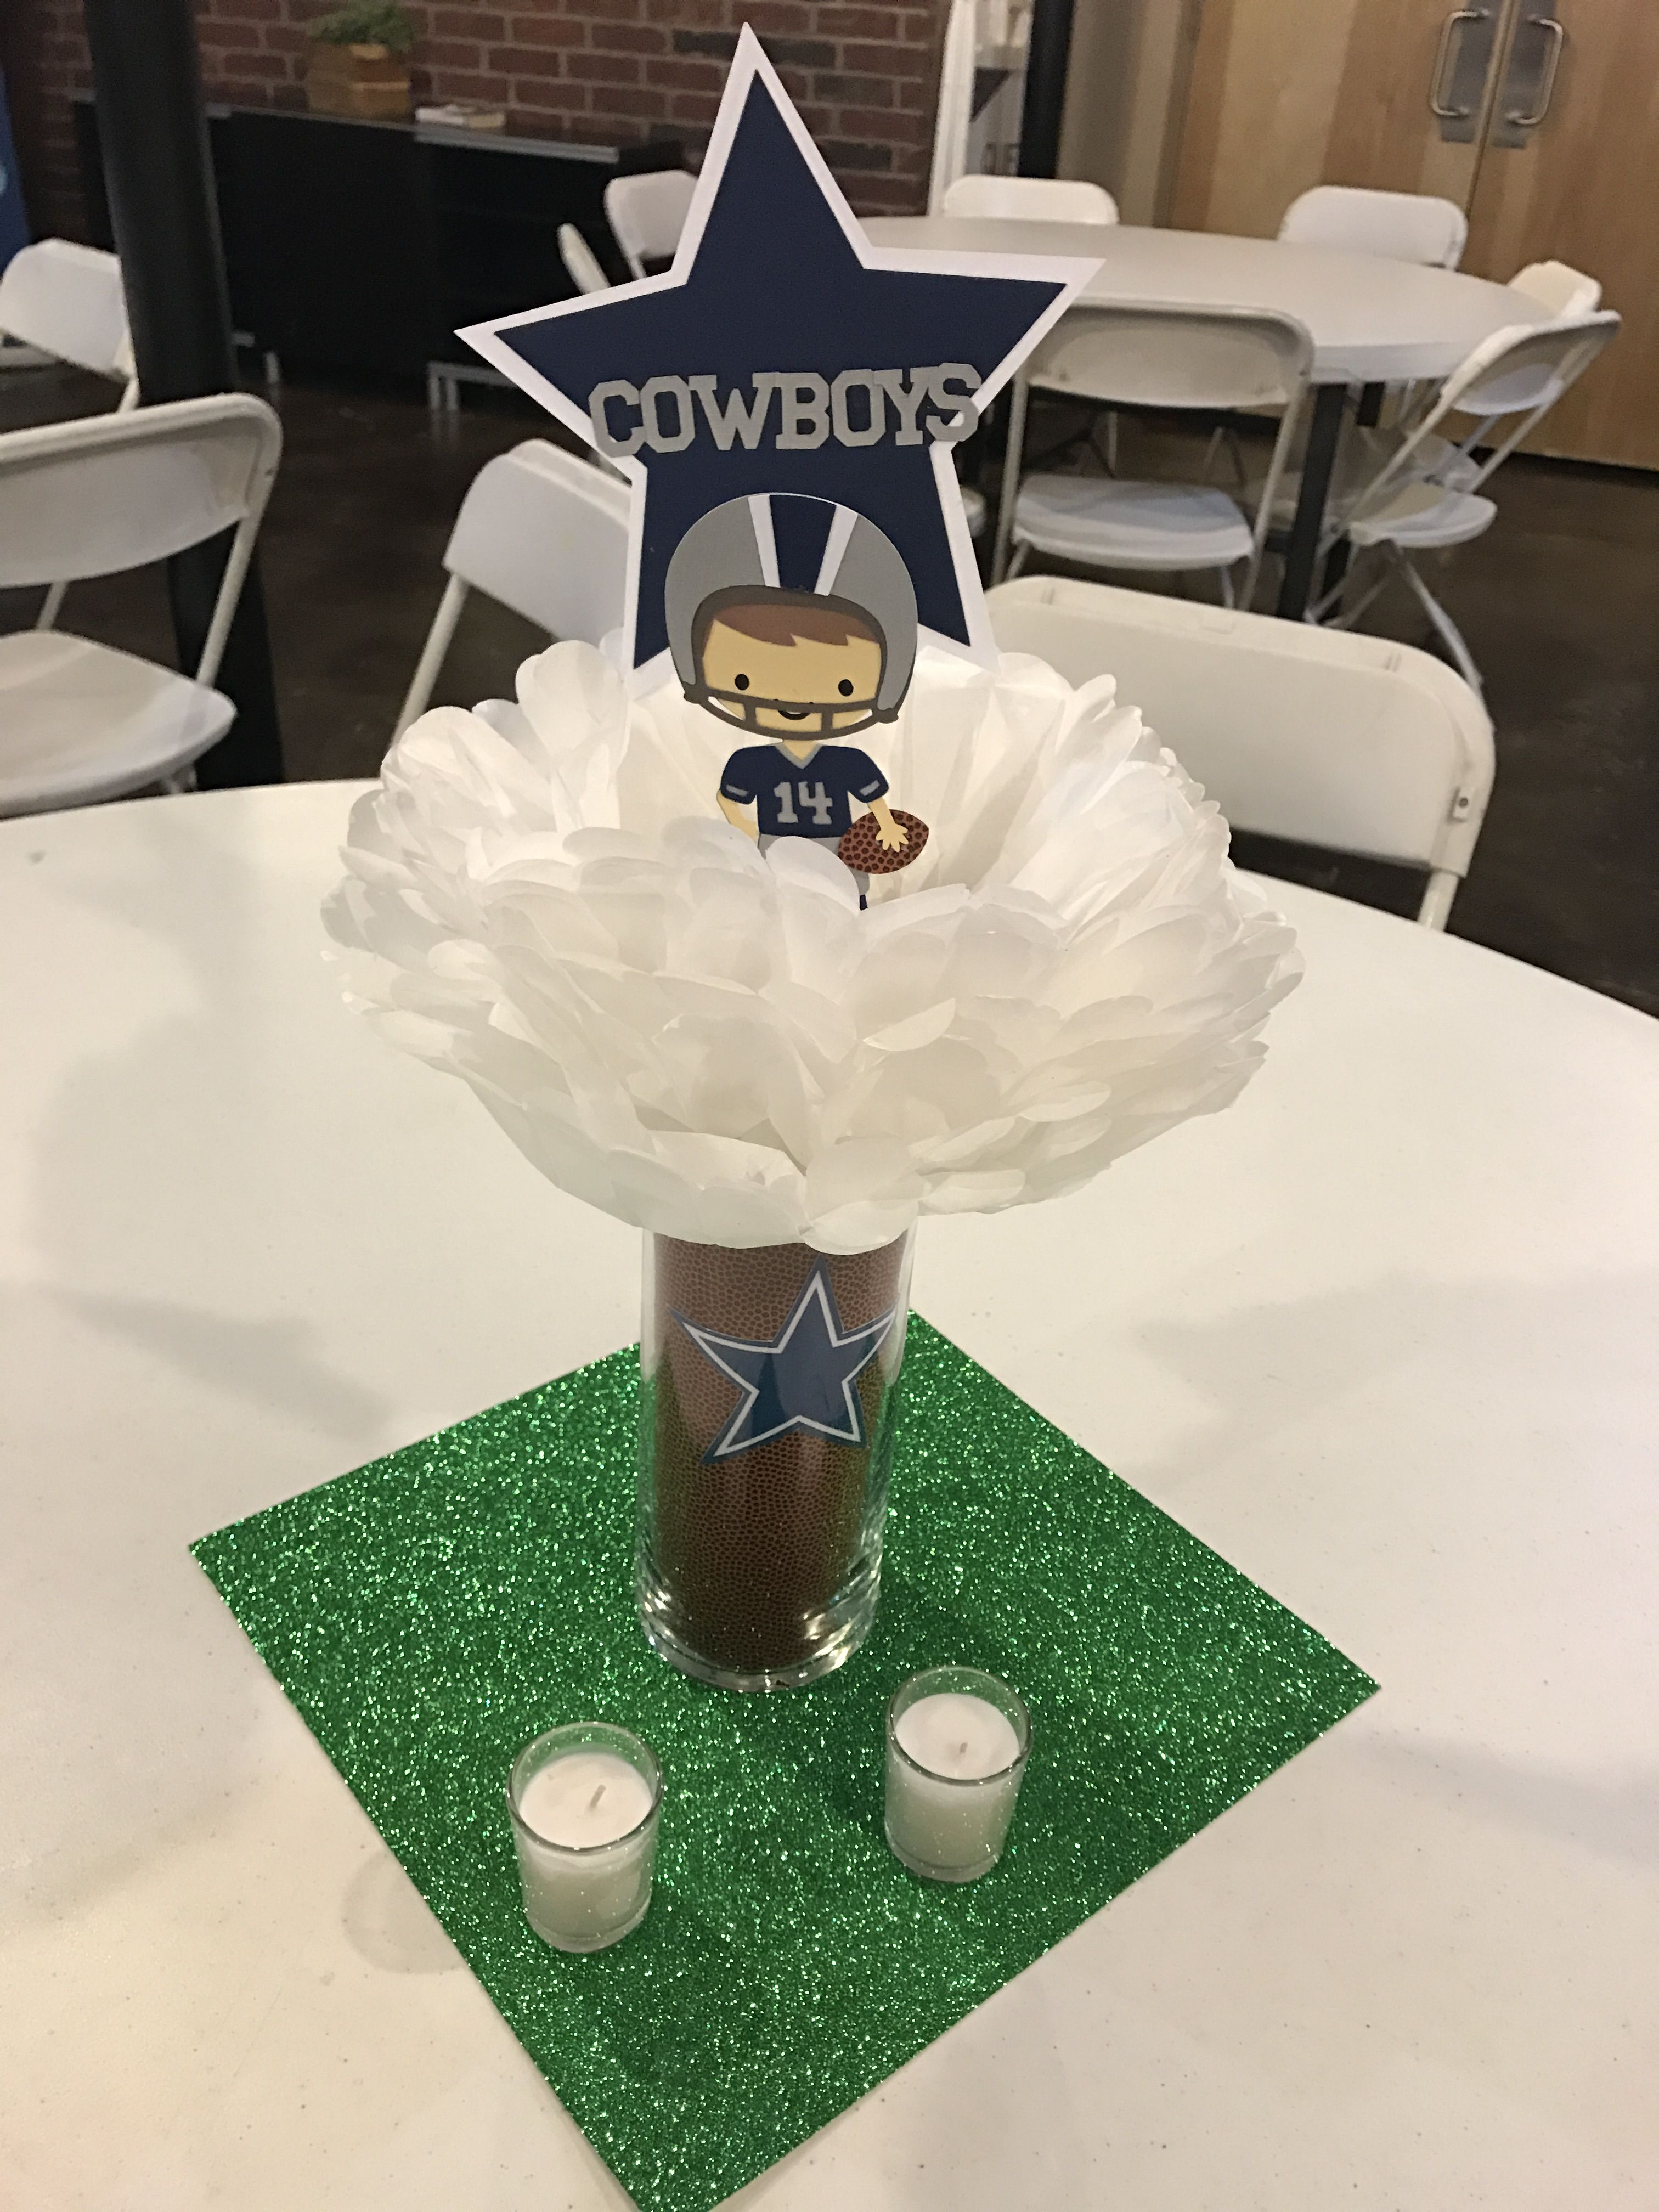 Dallas Cowboys Table Centerpieces For A Baby Shower